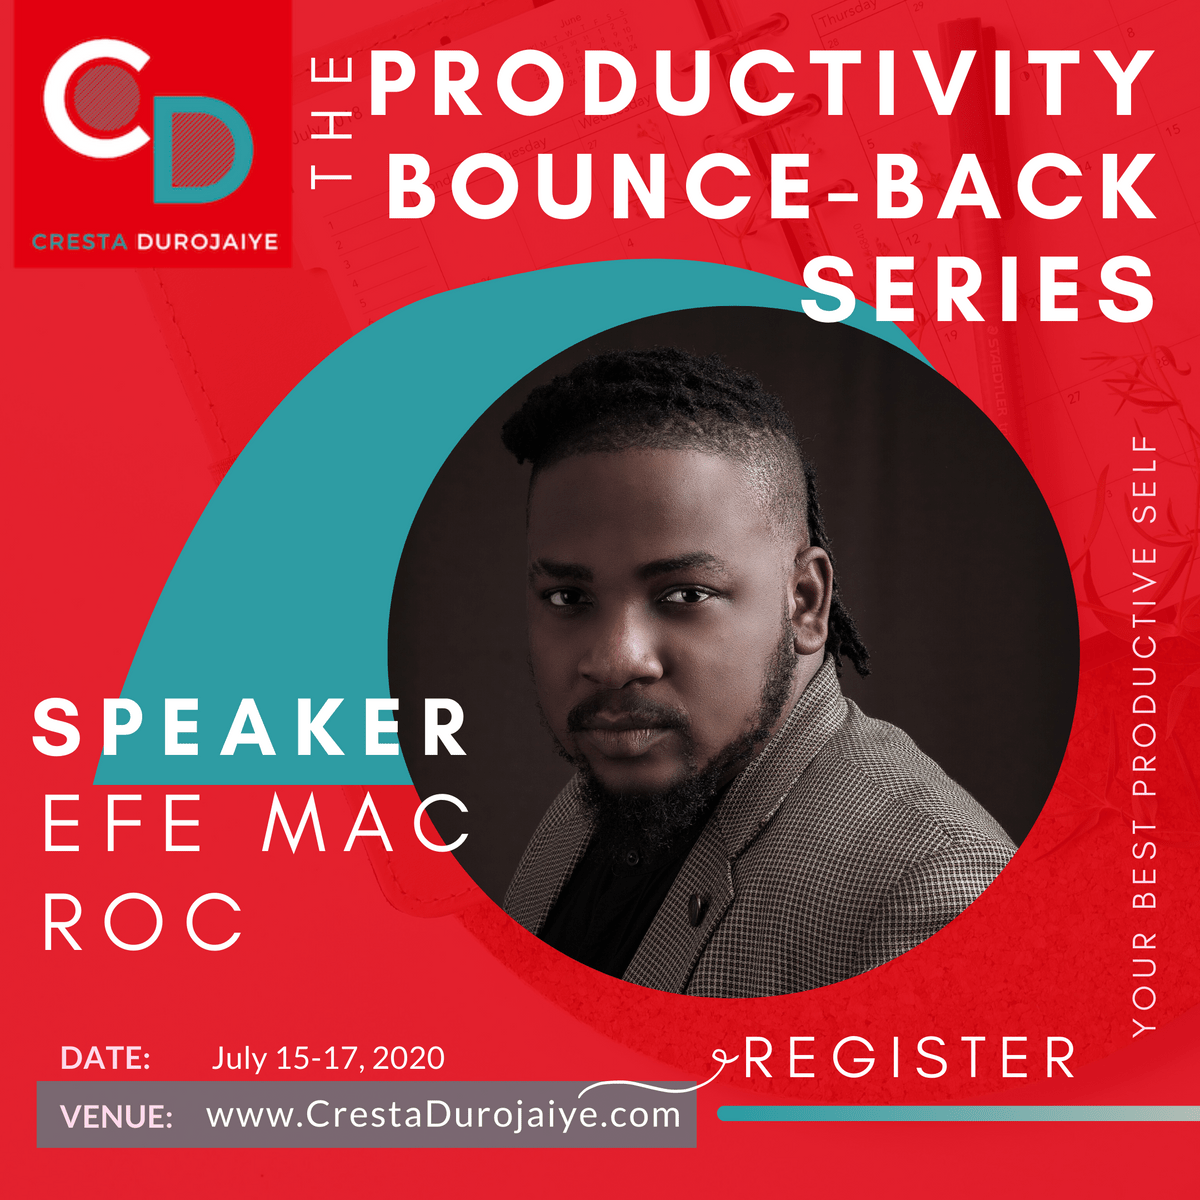 Efe Mac Roc is speaking at The Productivity Bounce Back Series